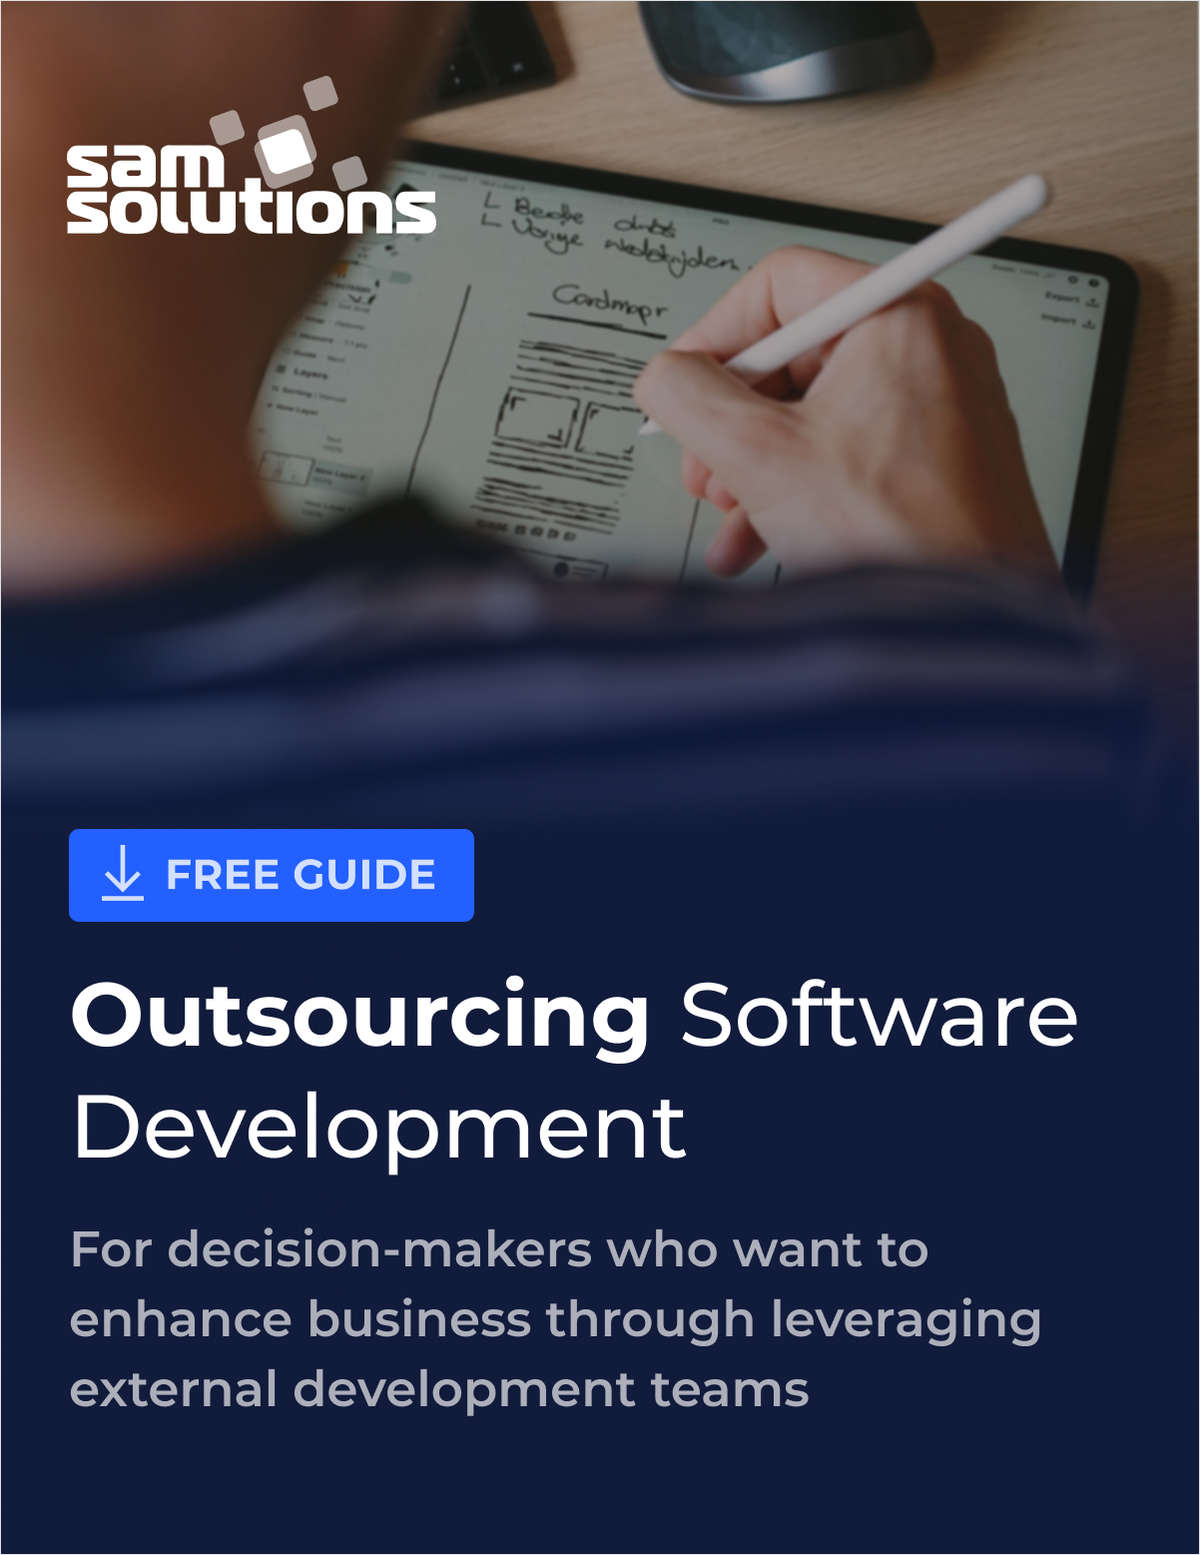 Outsourcing Software Development: A Guide for Decision-Makers